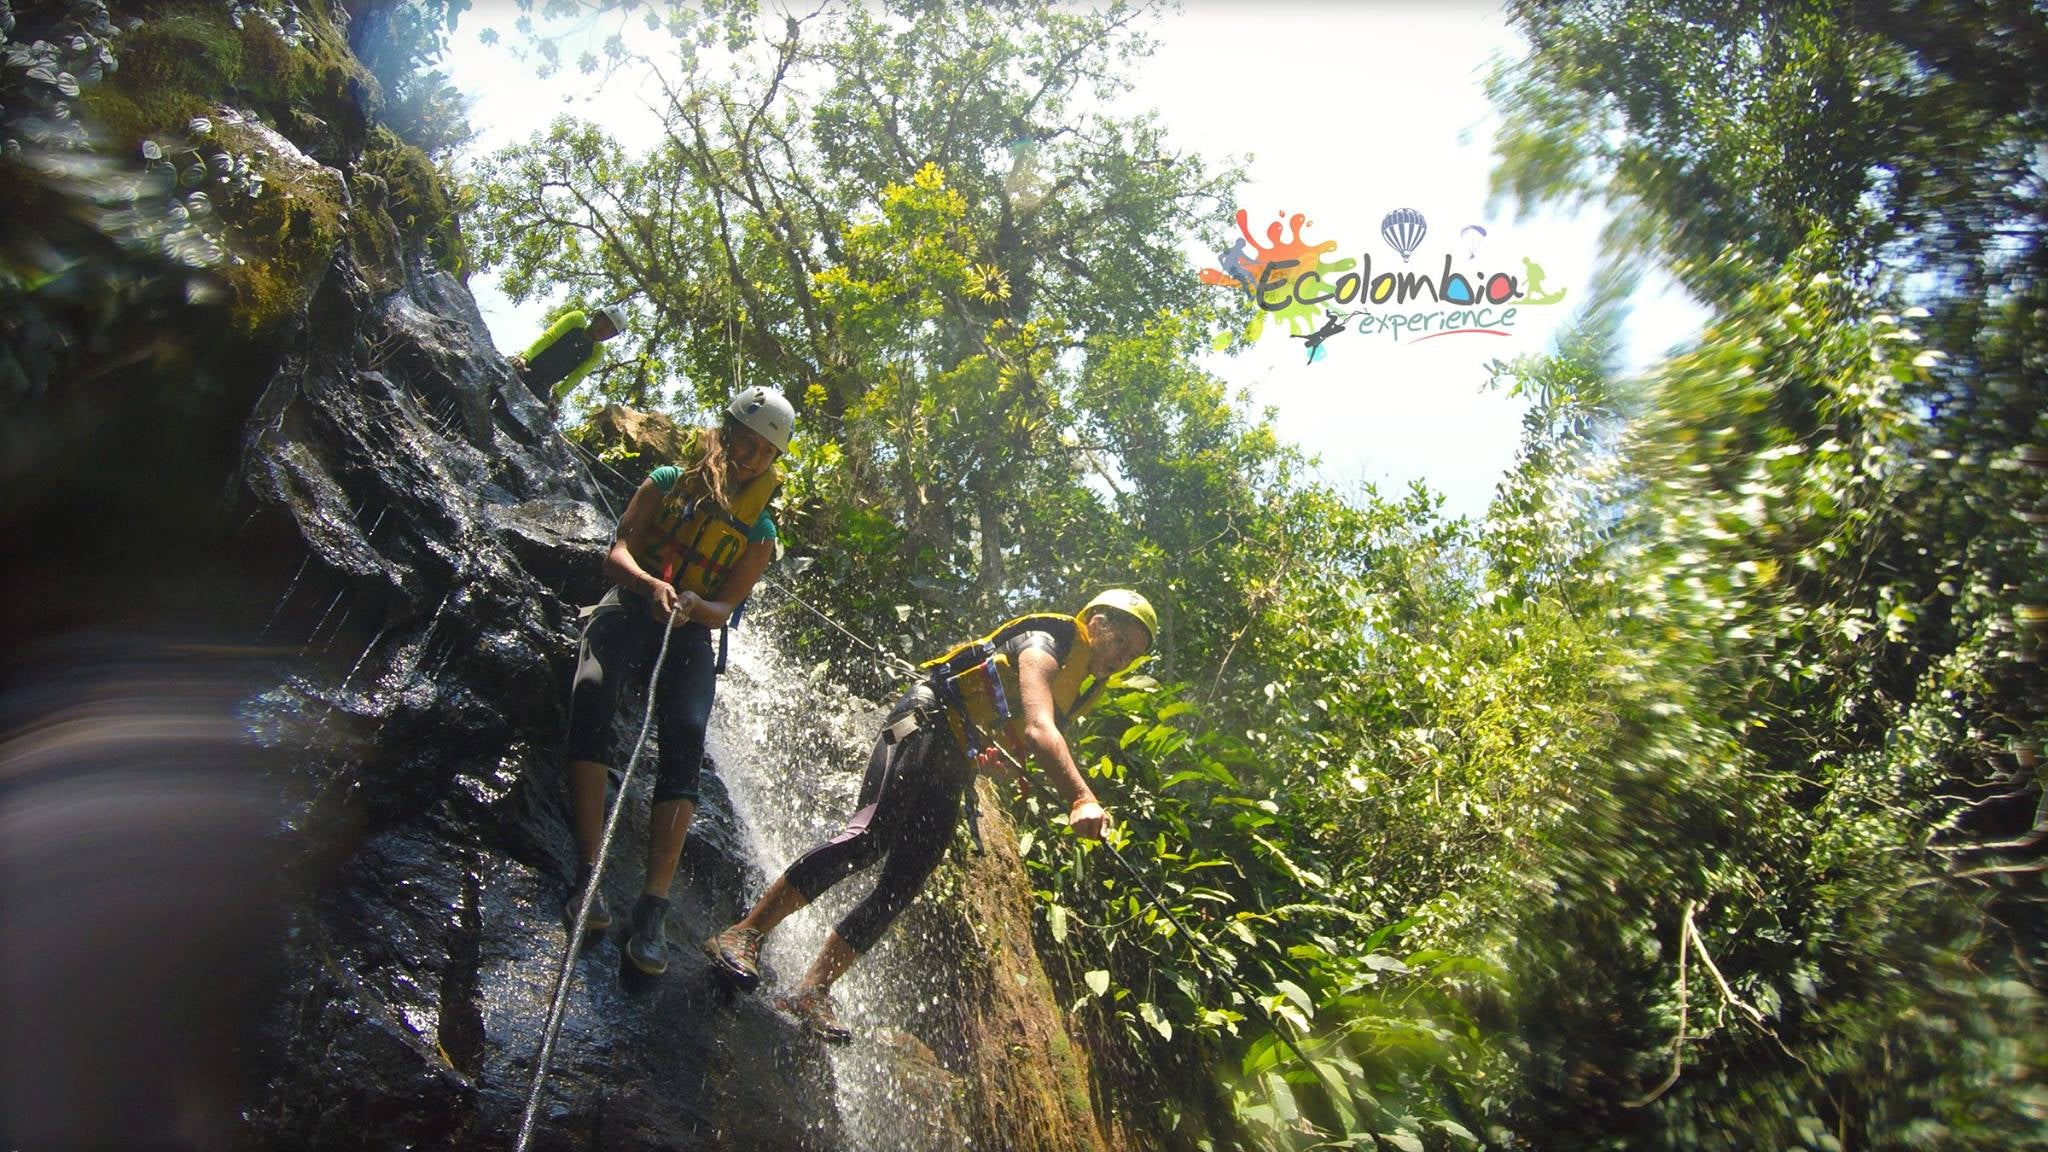 Rainforest in Ecolombia experience